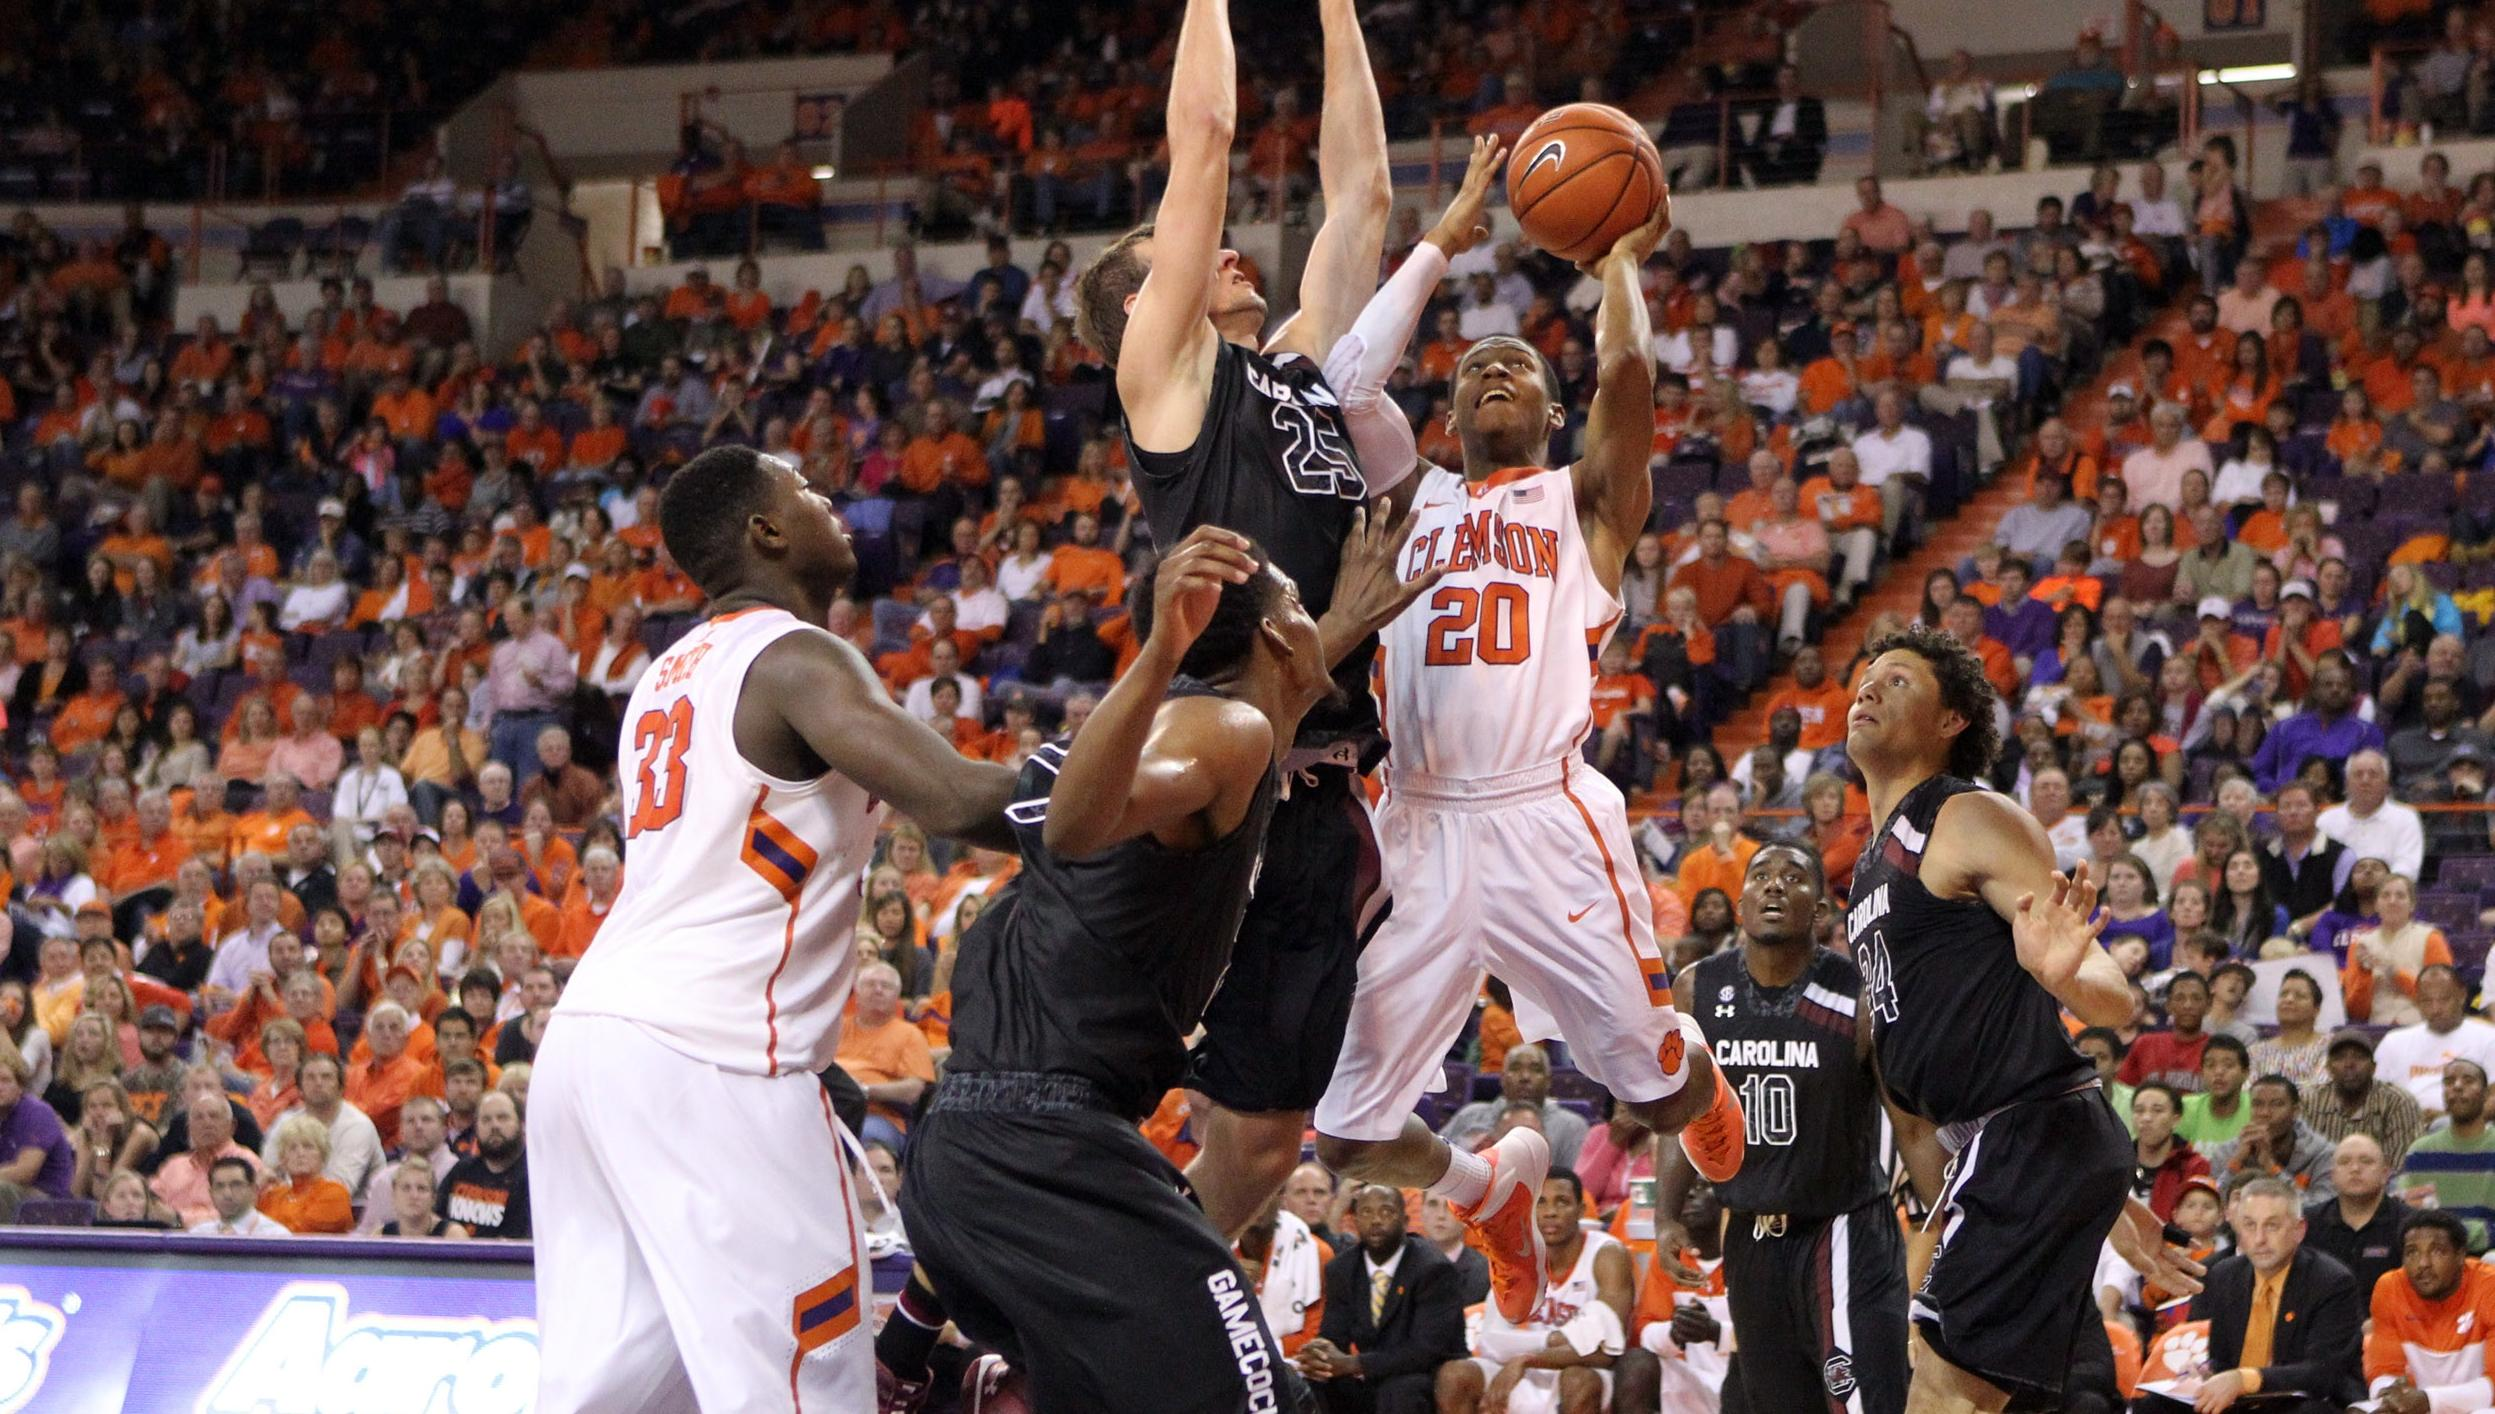 EXCLUSIVE: Depth Helps Make Difference for Tigers in Rivalry Win